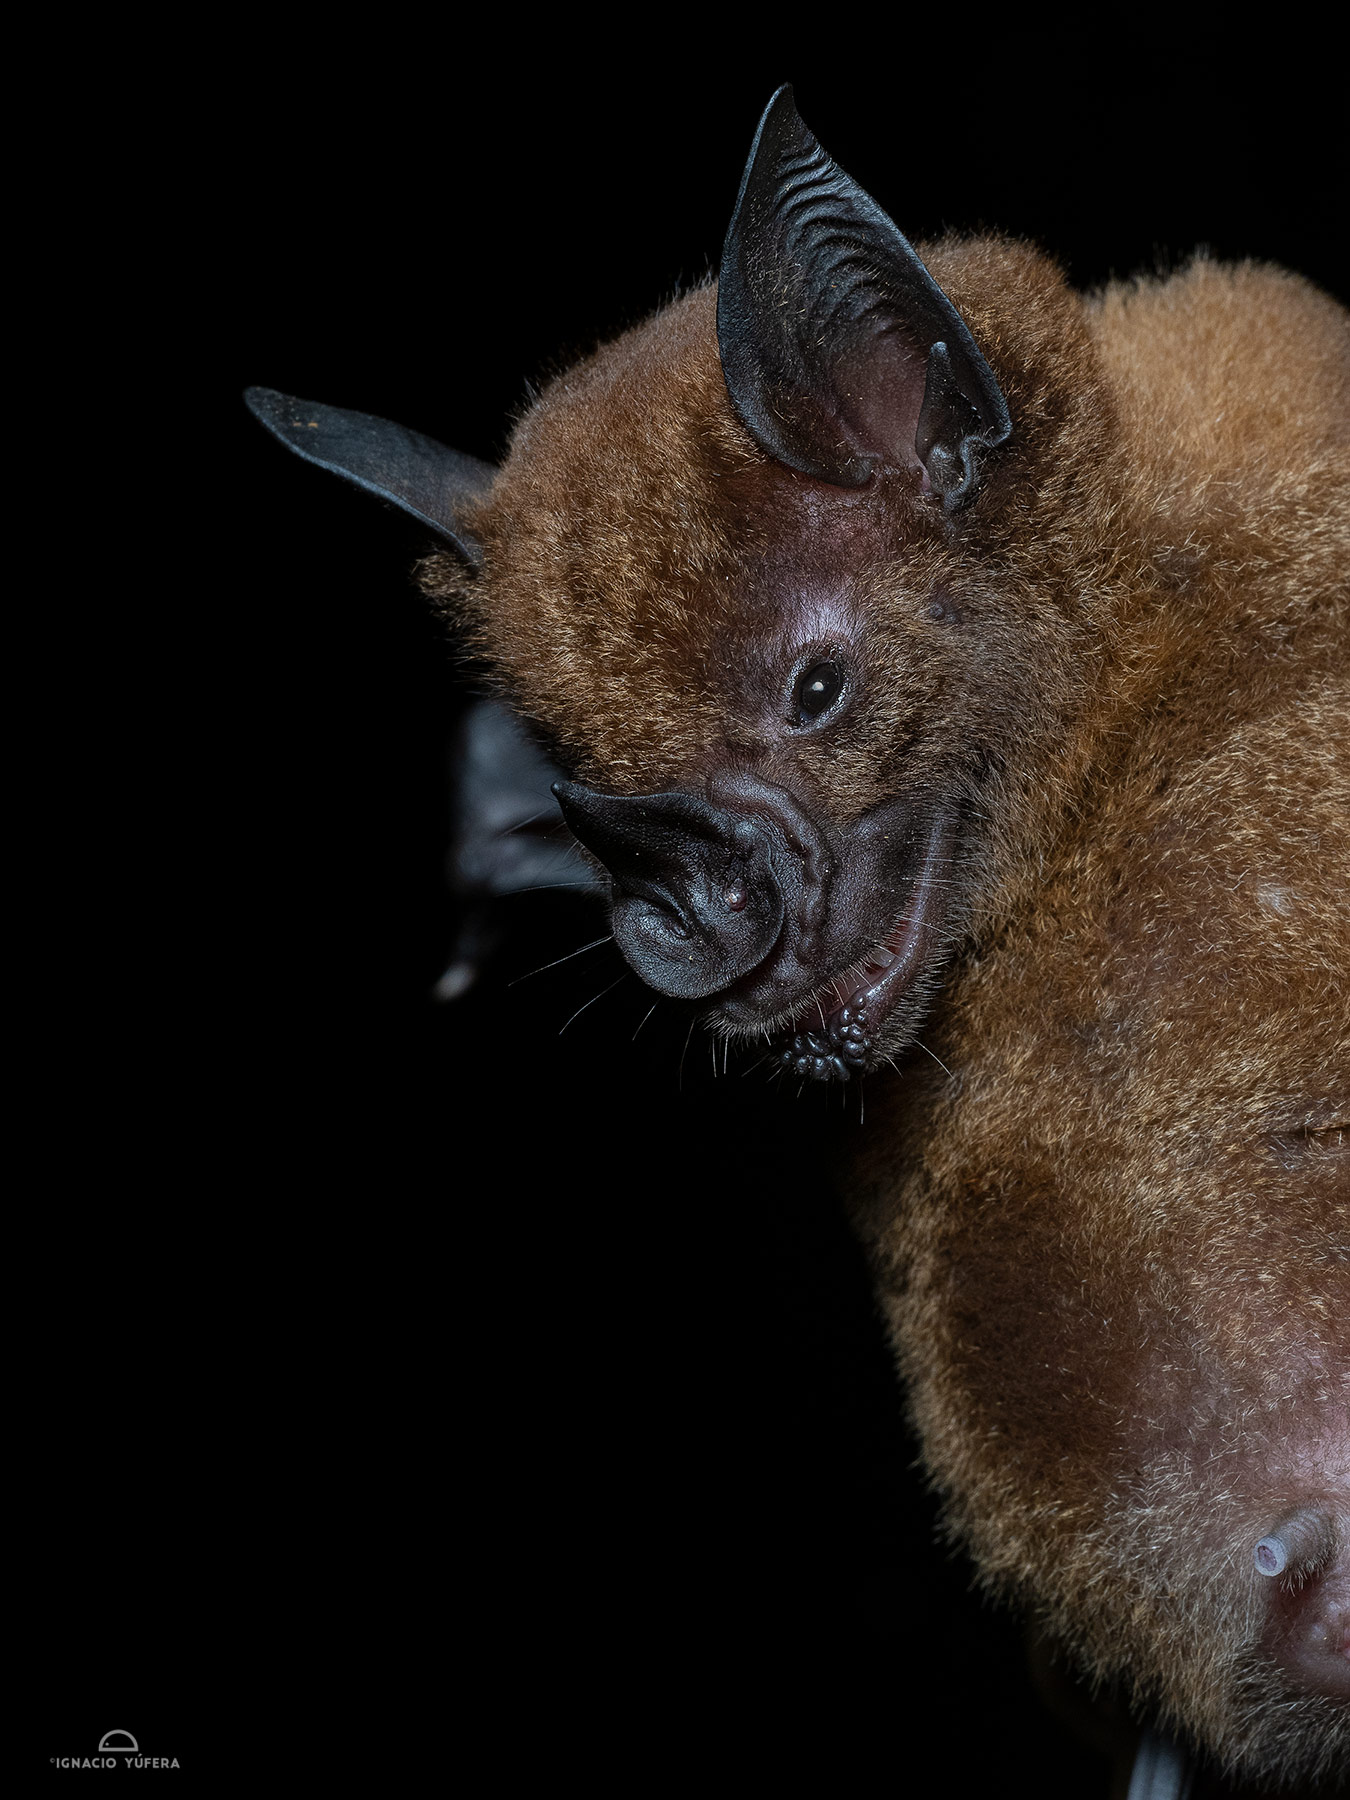 Greater Spear-nosed Bat (Phyllostomus hastatus), madre de Dios, Peru